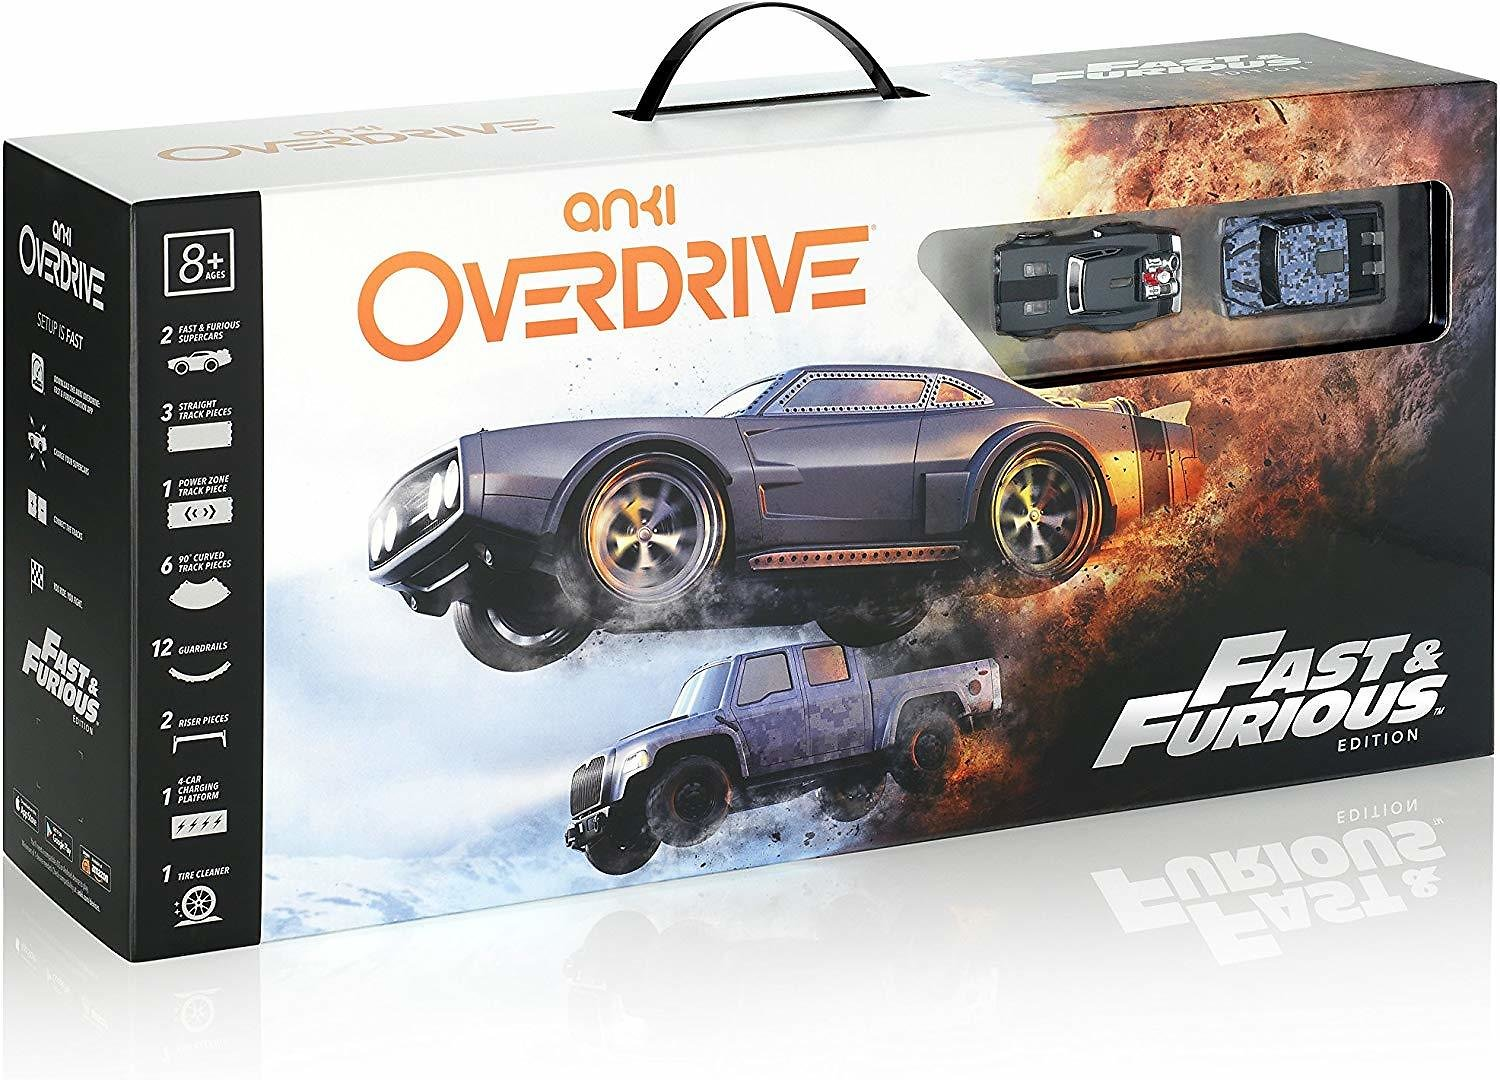 Anki Overdrive 'Fast & Furious' Remote Control Car Set